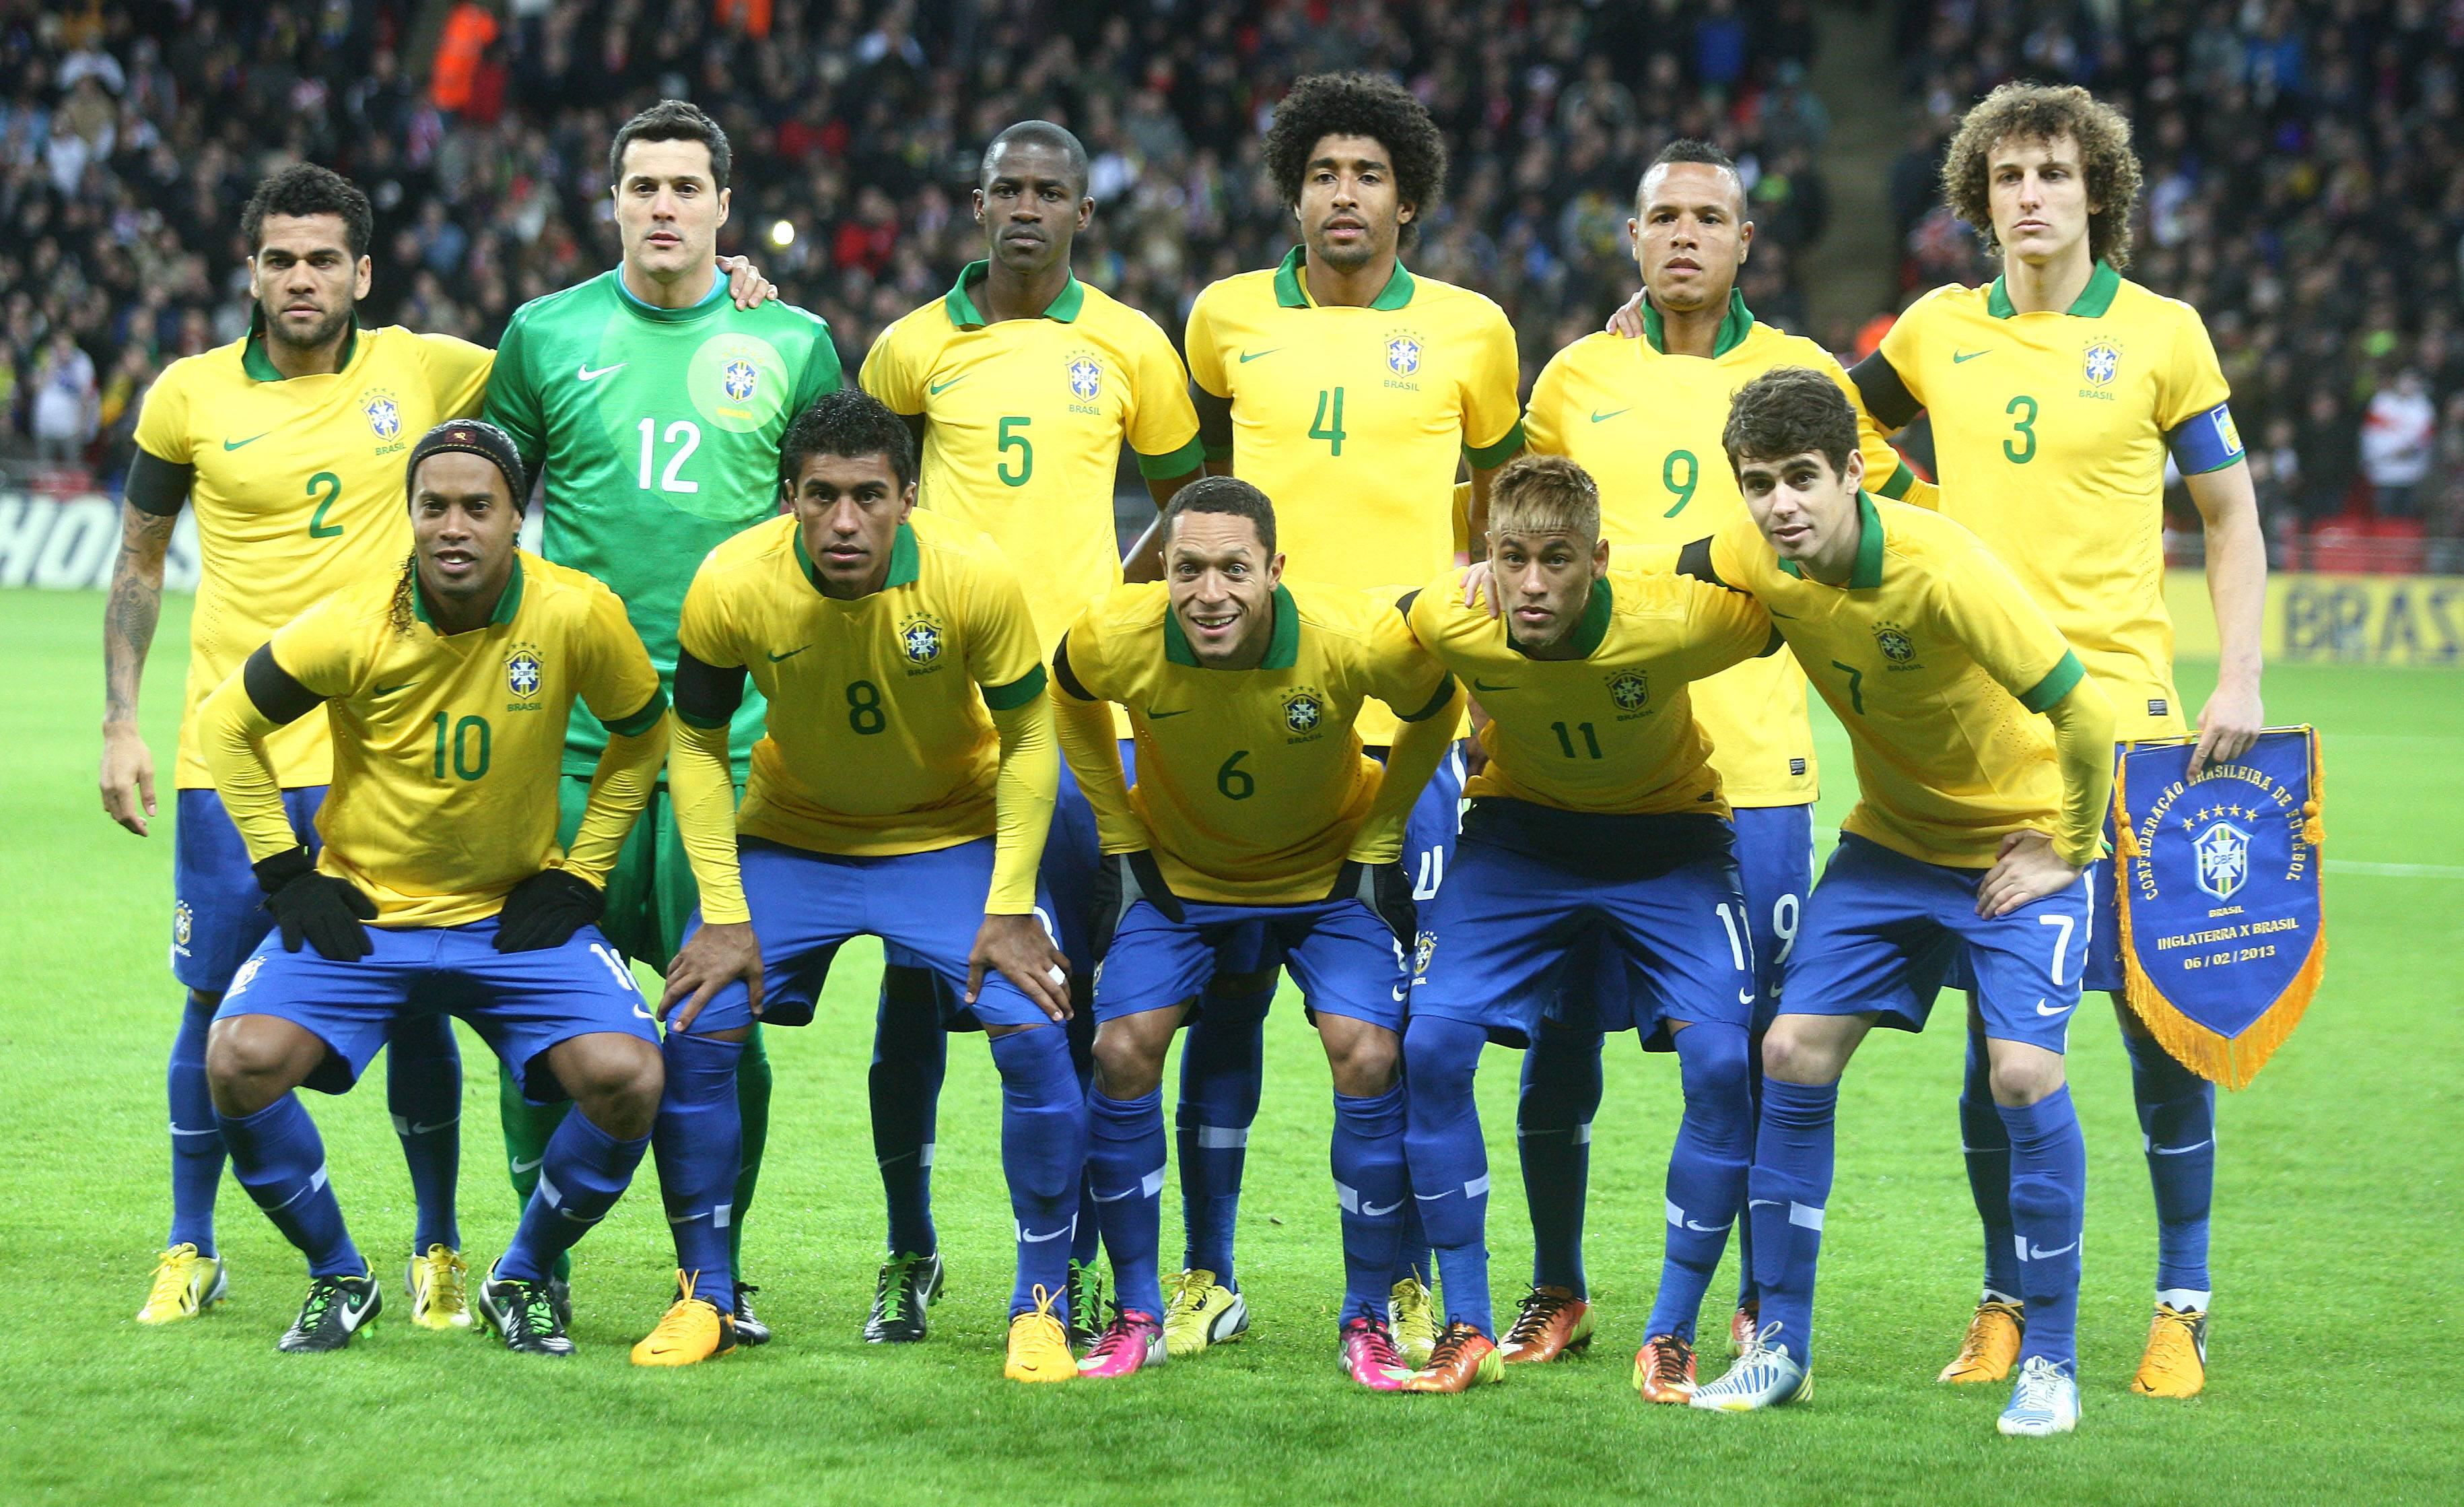 Brazil National Football Team Wallpaper 3660x2238 px Free Download ...